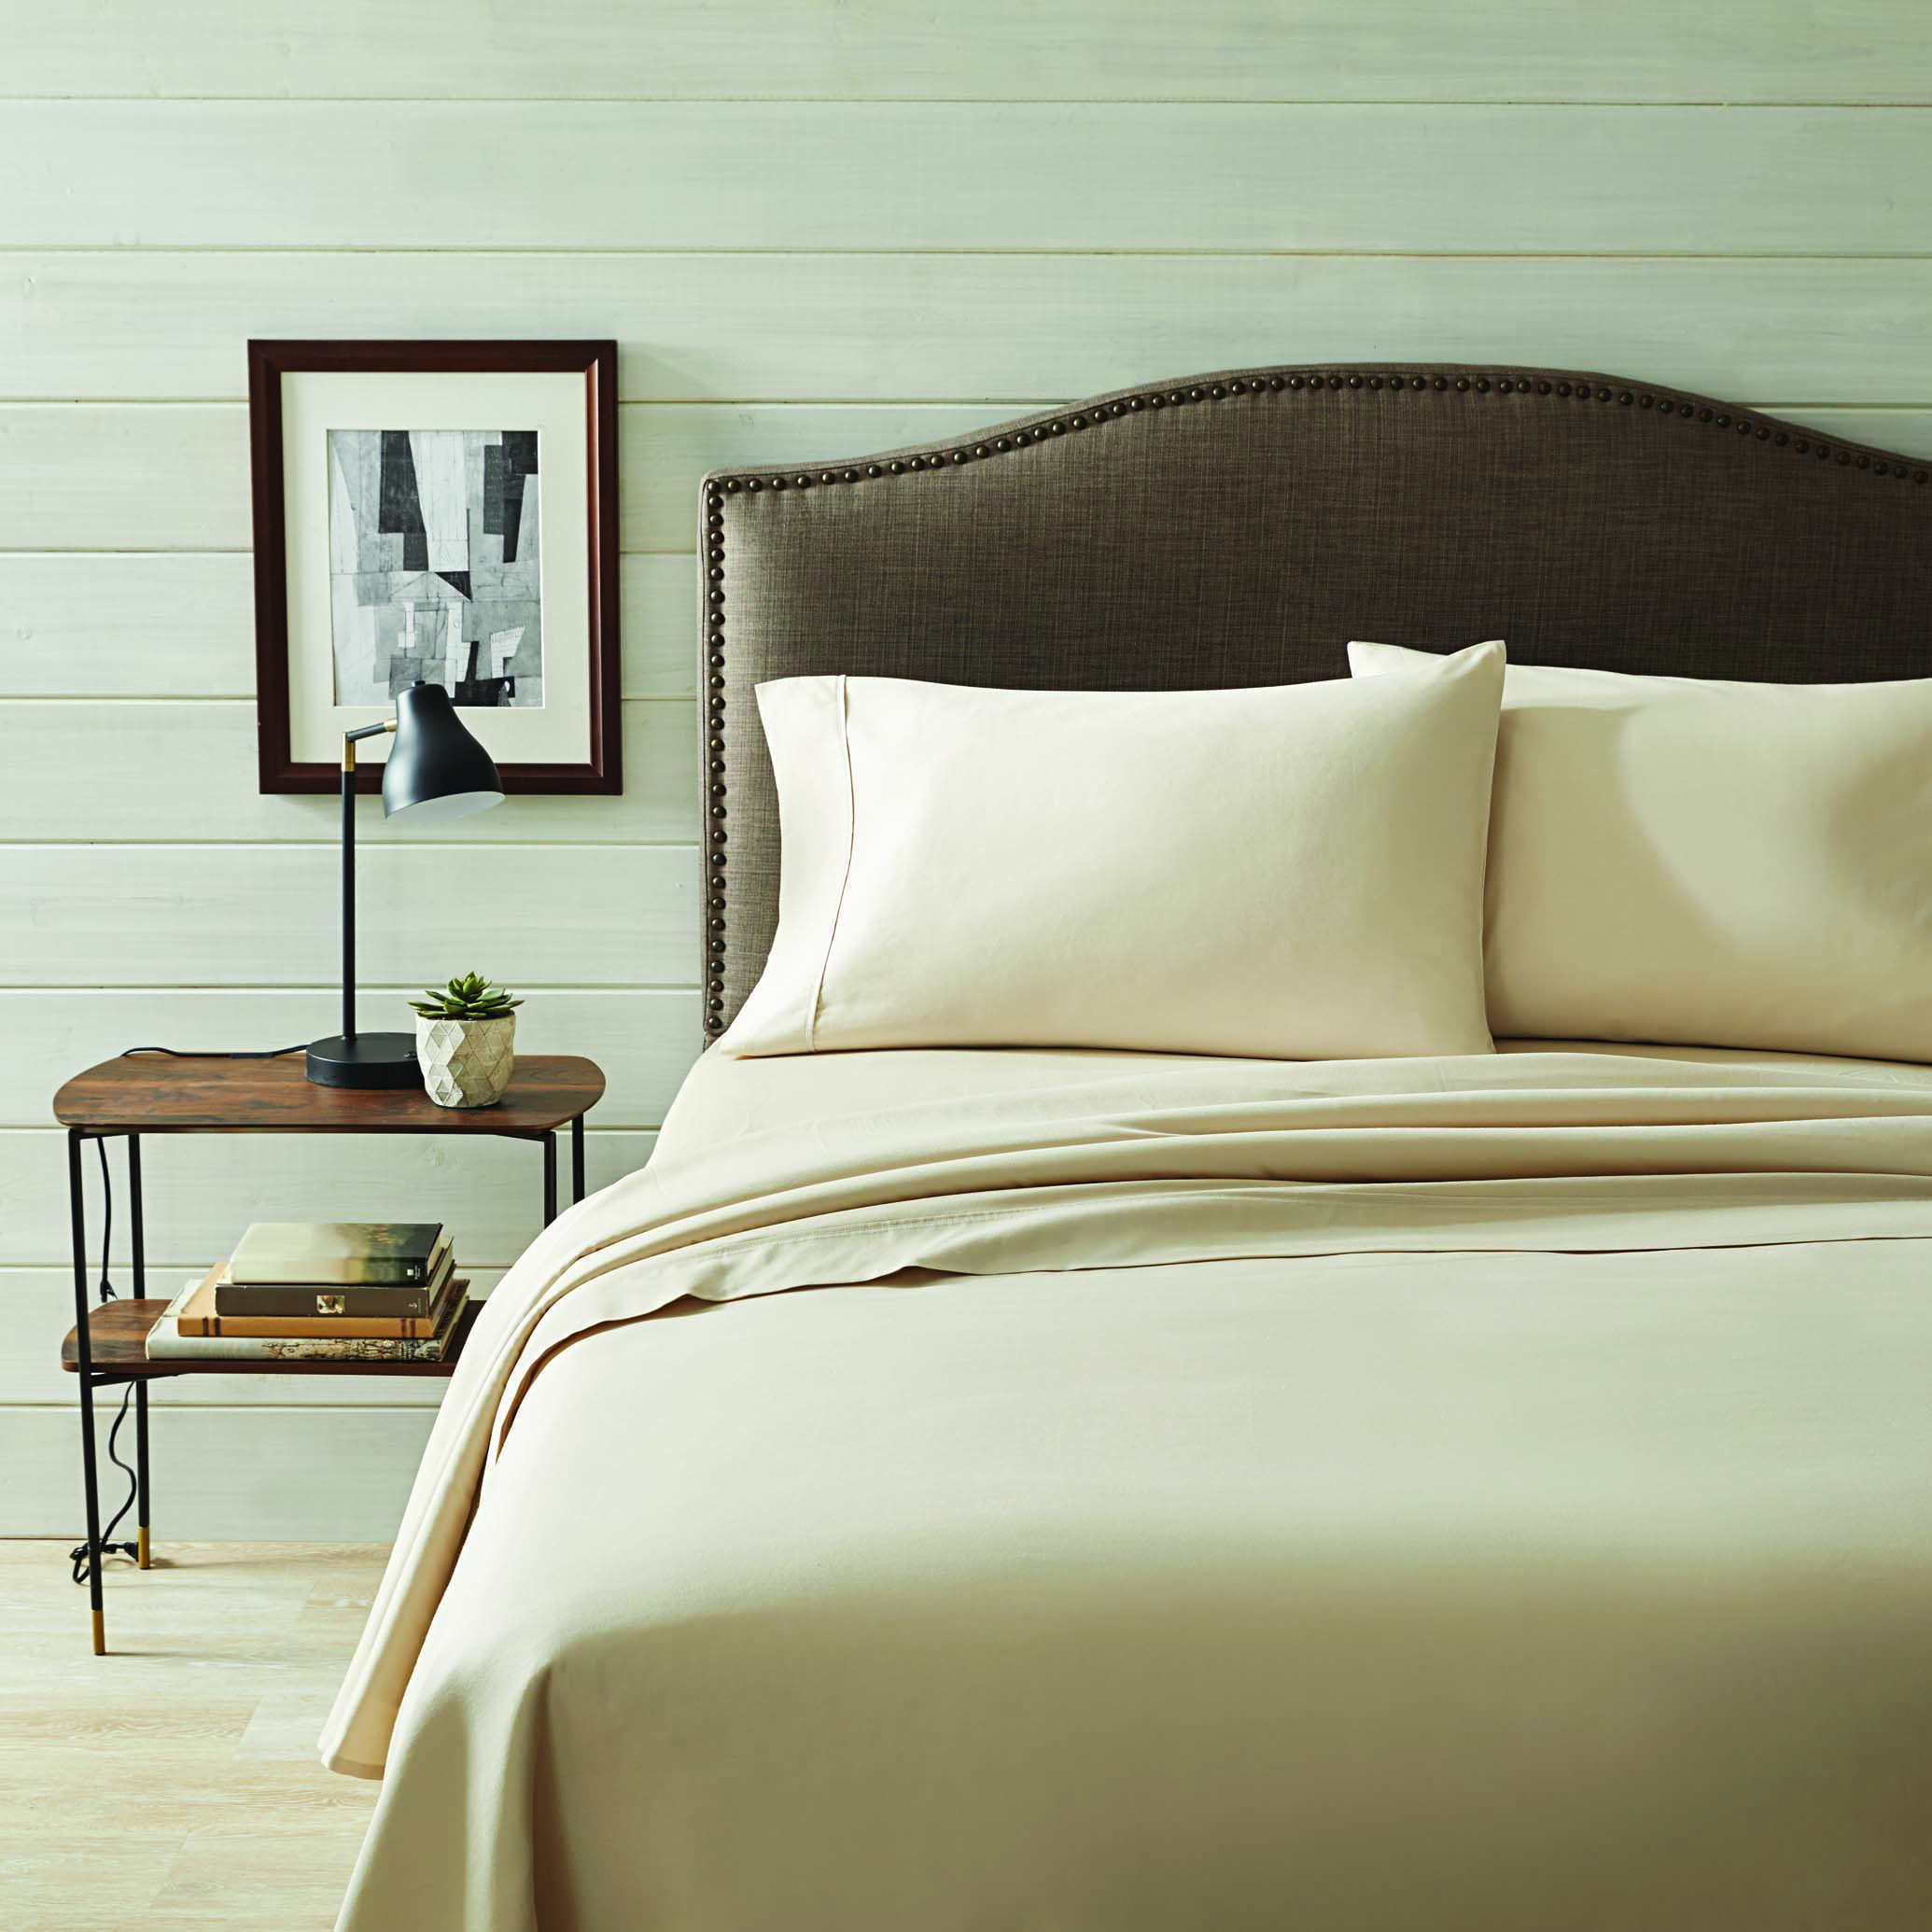 Better Homes and Gardens 300-Thread Count Organic Sheet Set